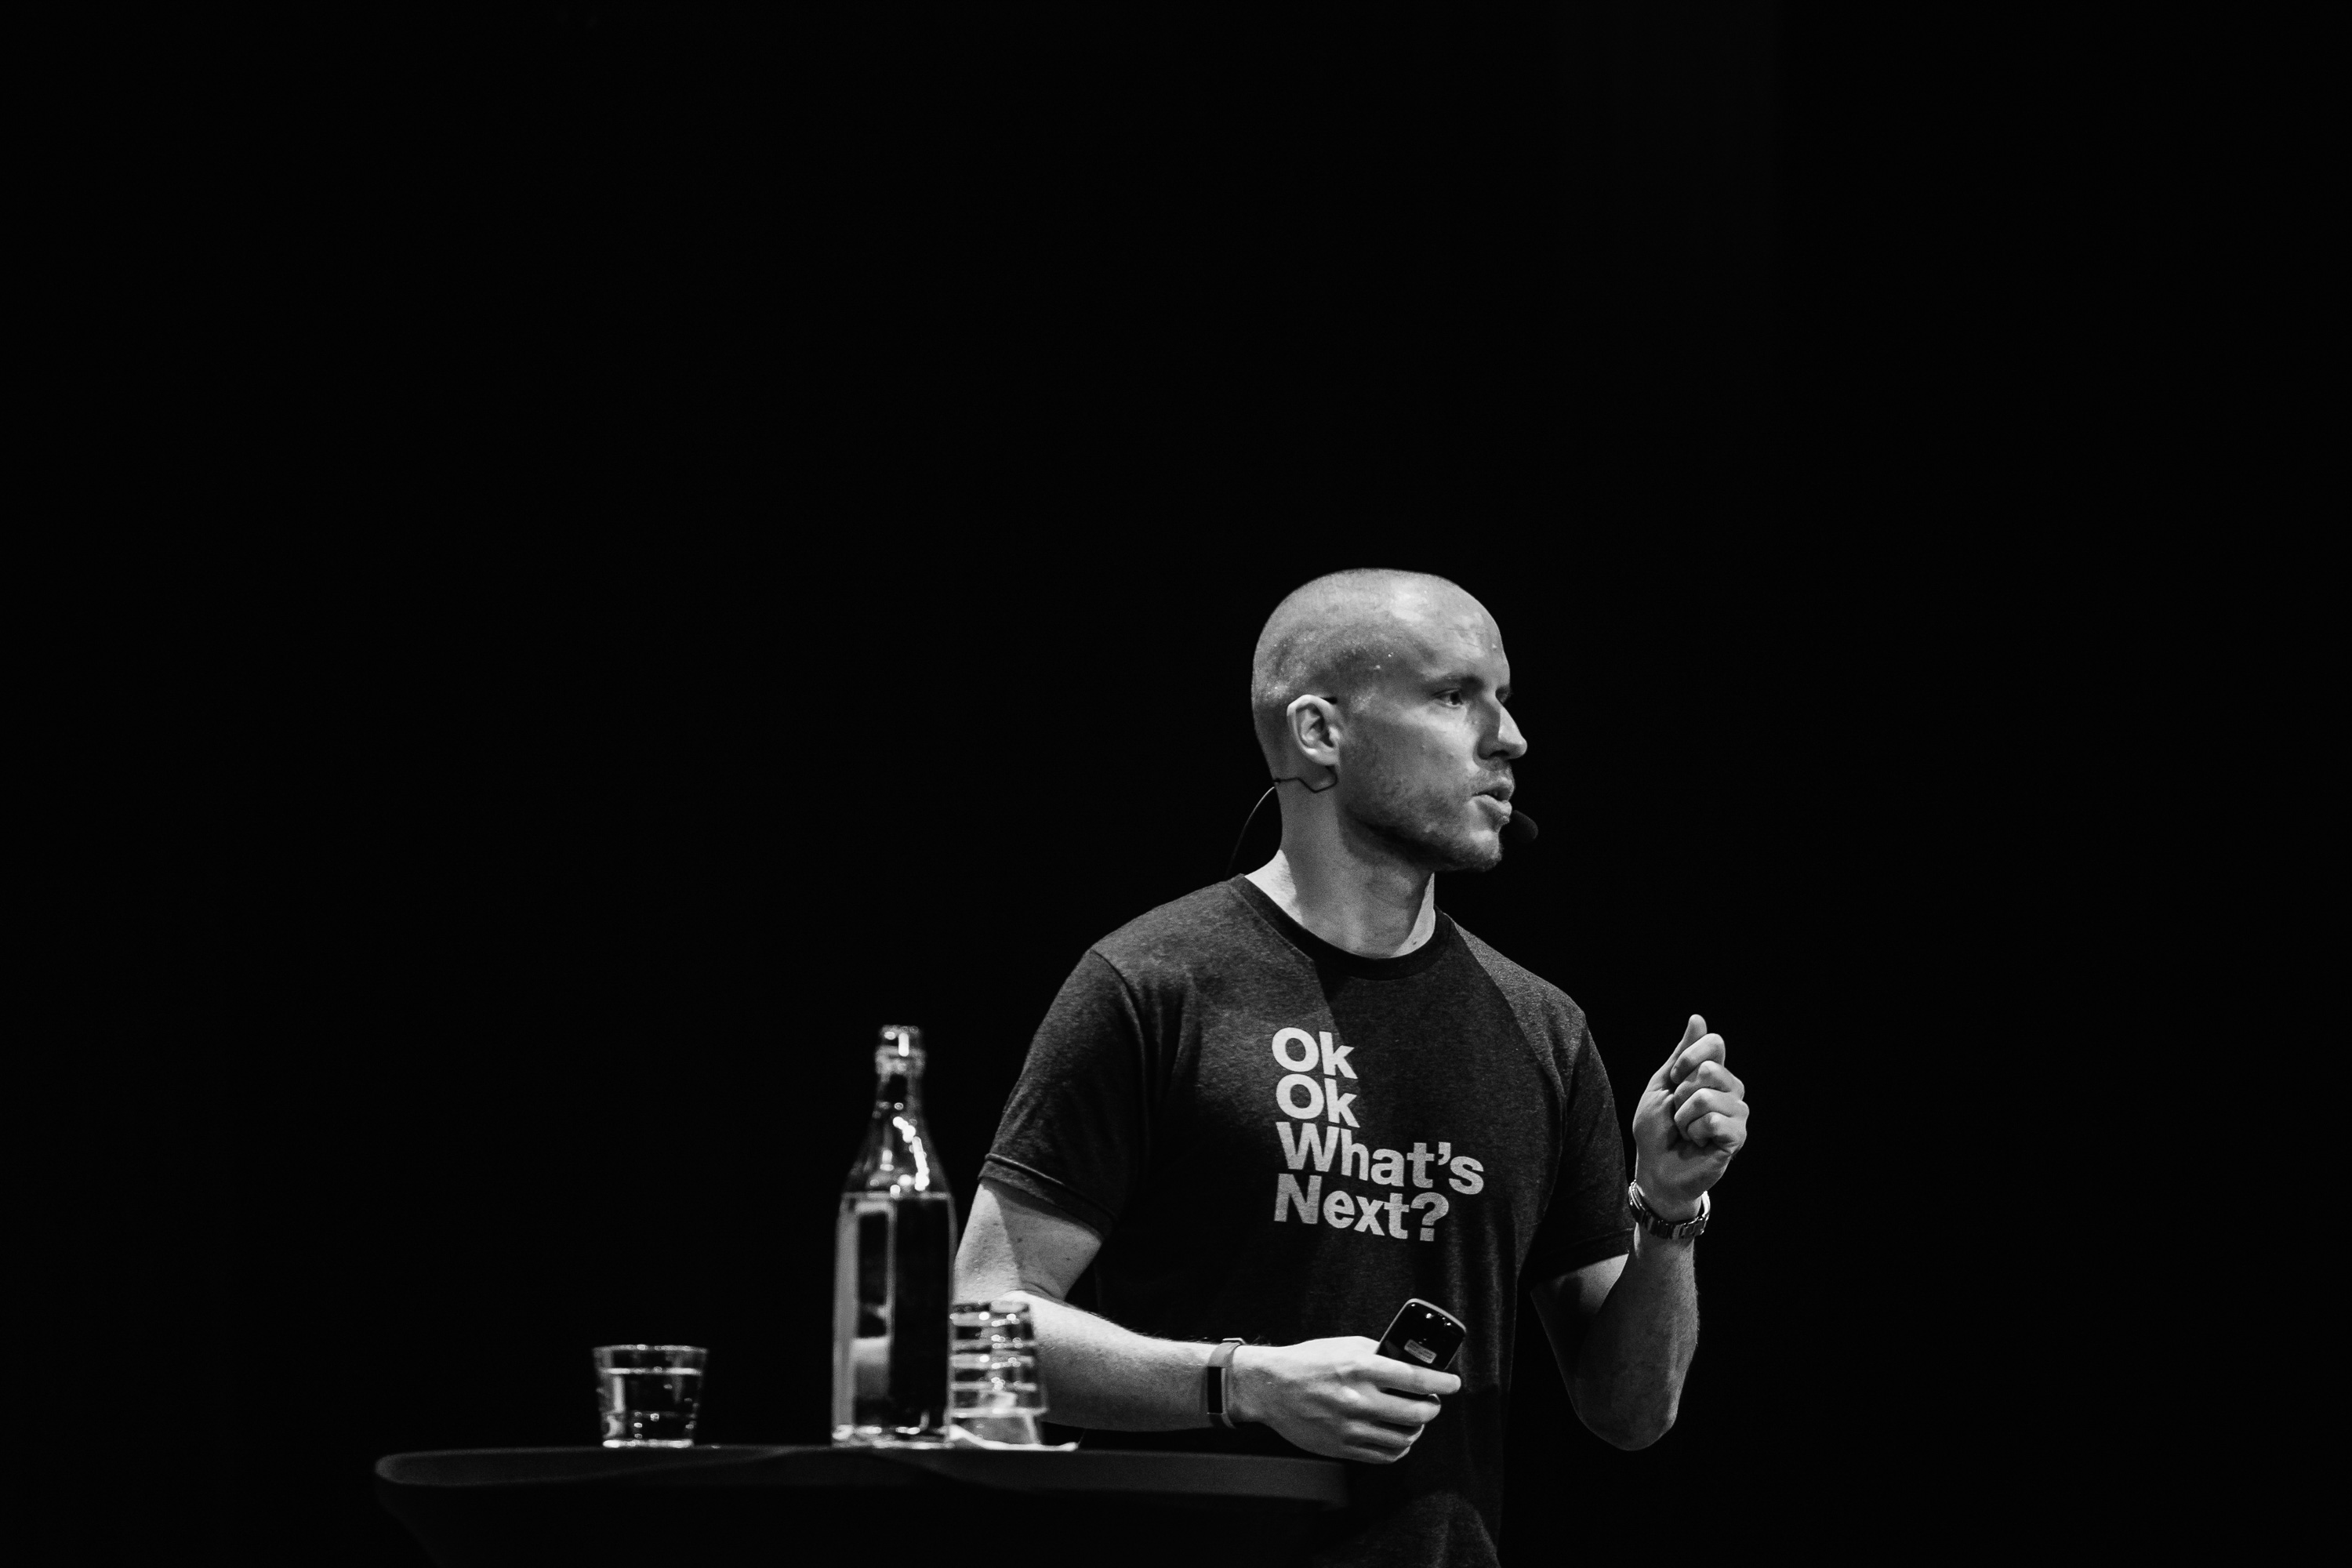 Noel Tock, Chief Growth Officer, at Human Made speaking on stage at WCEU 2018